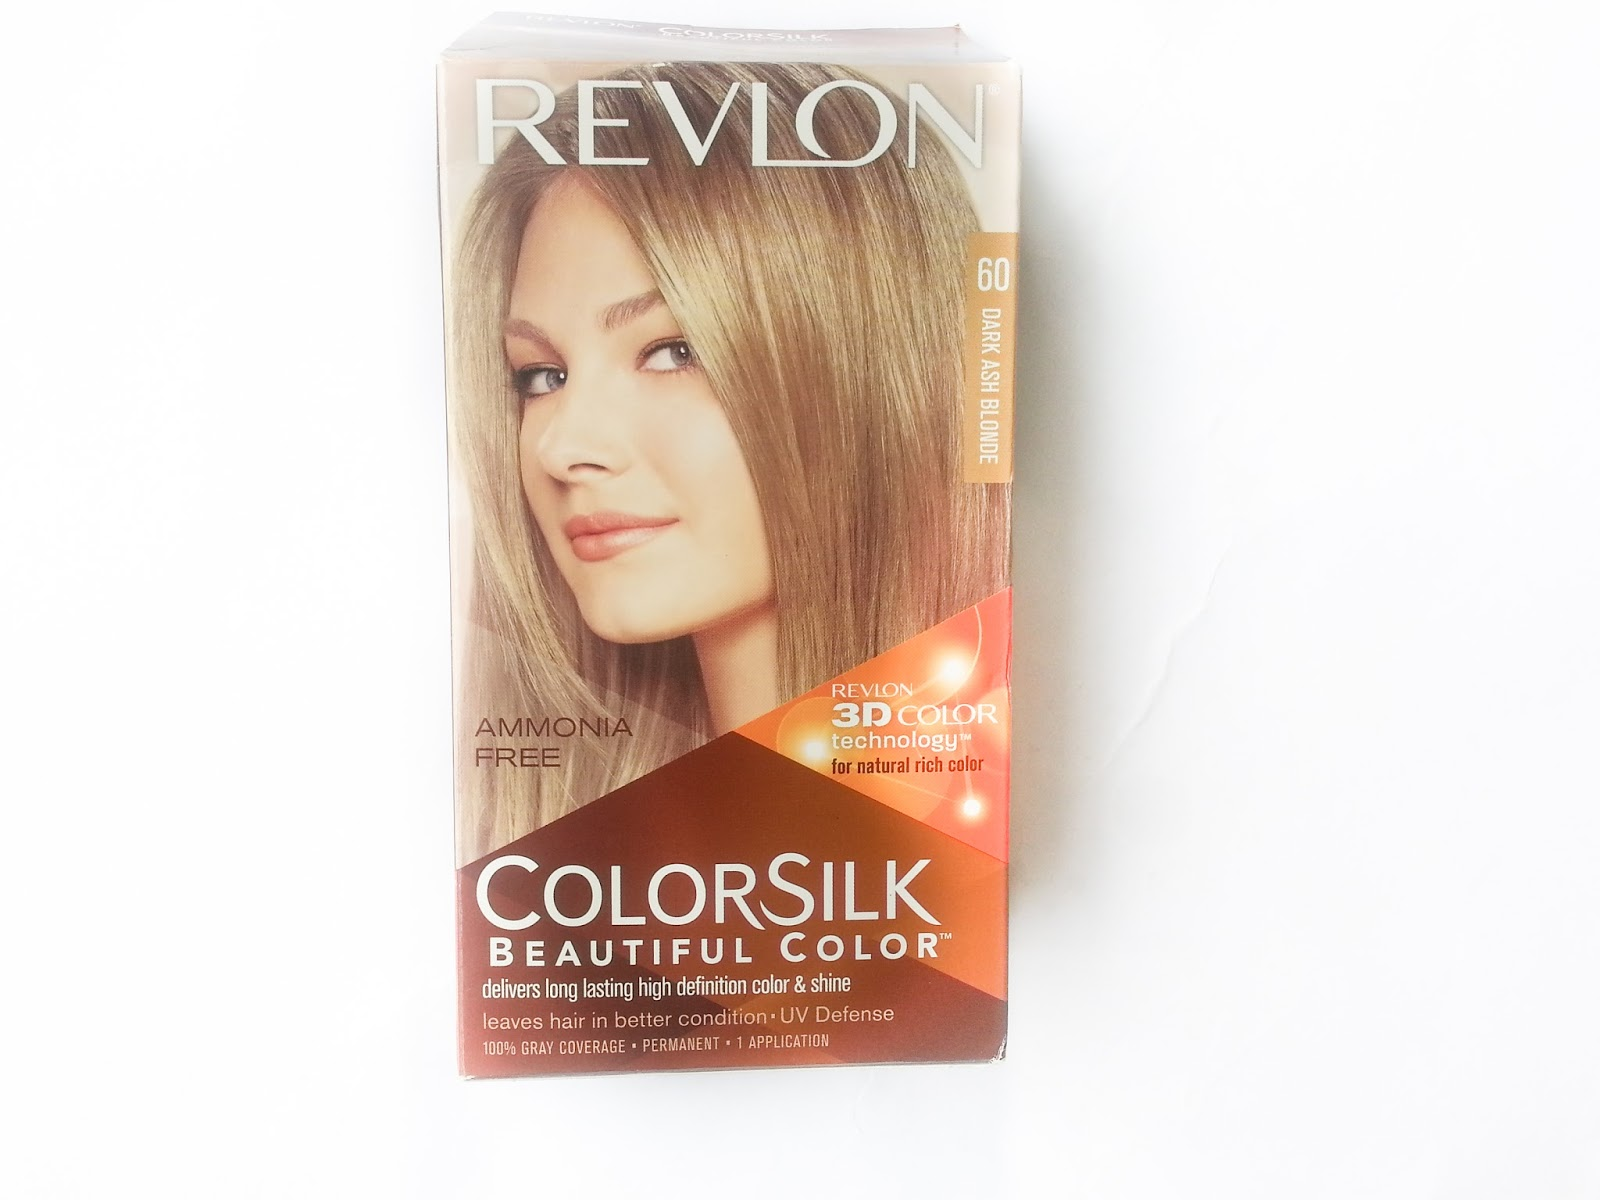 Sehar Ahmed Revlon Color Silk 60 Dark Ash Blondebeauty Review